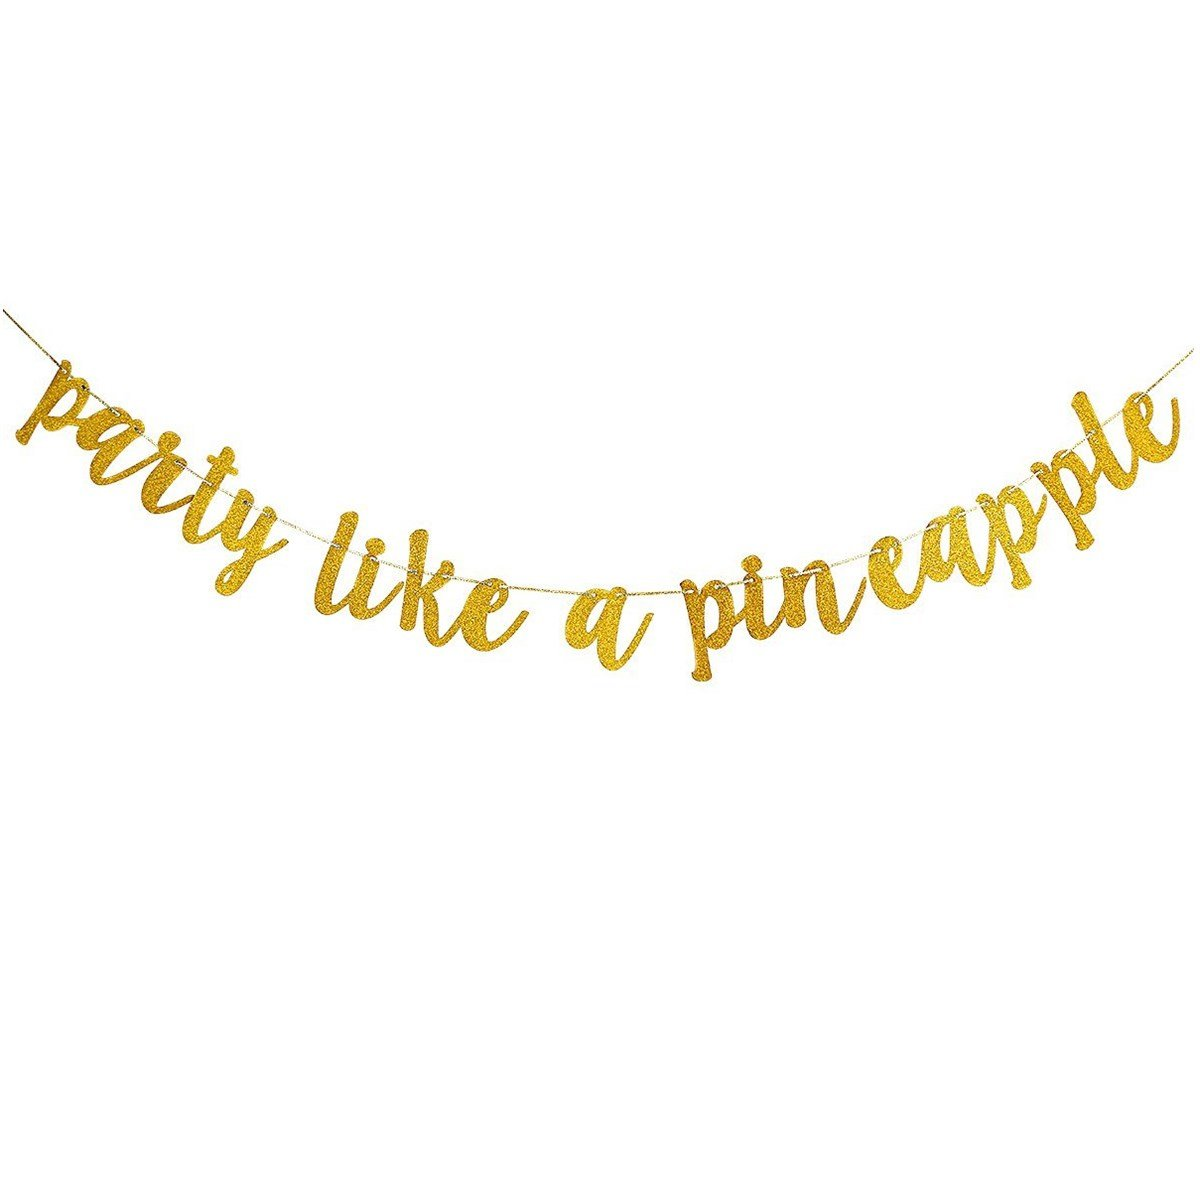 Gold Glittery Party Like A Pineapple Banner,Hawaiian Tropical Luau Beach Summer Theme Party Decorations Garland LeeSky PLP-80